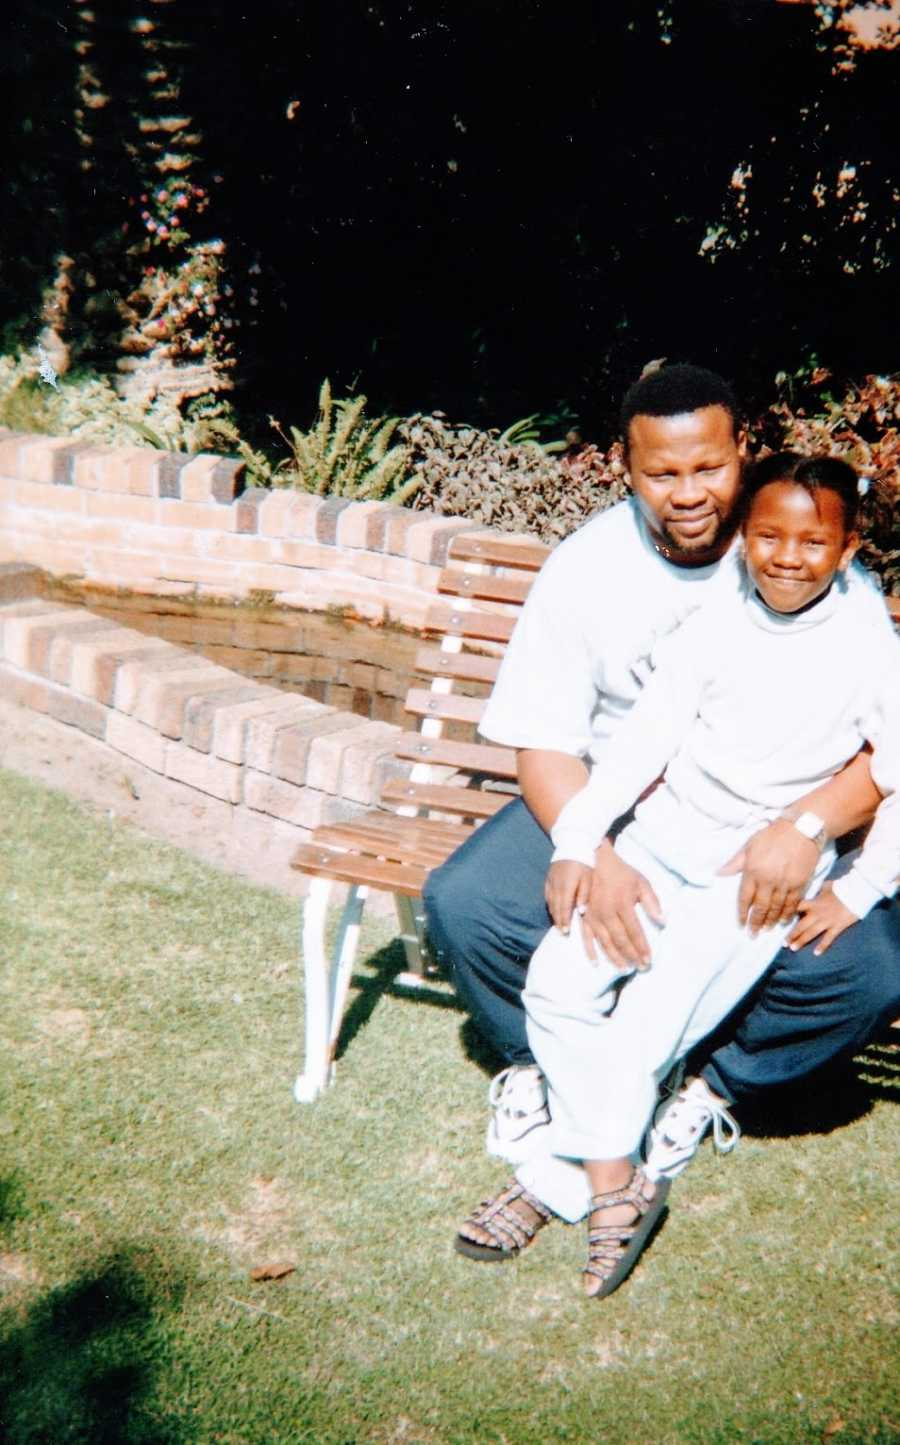 A young girl dressed in white sits with her father